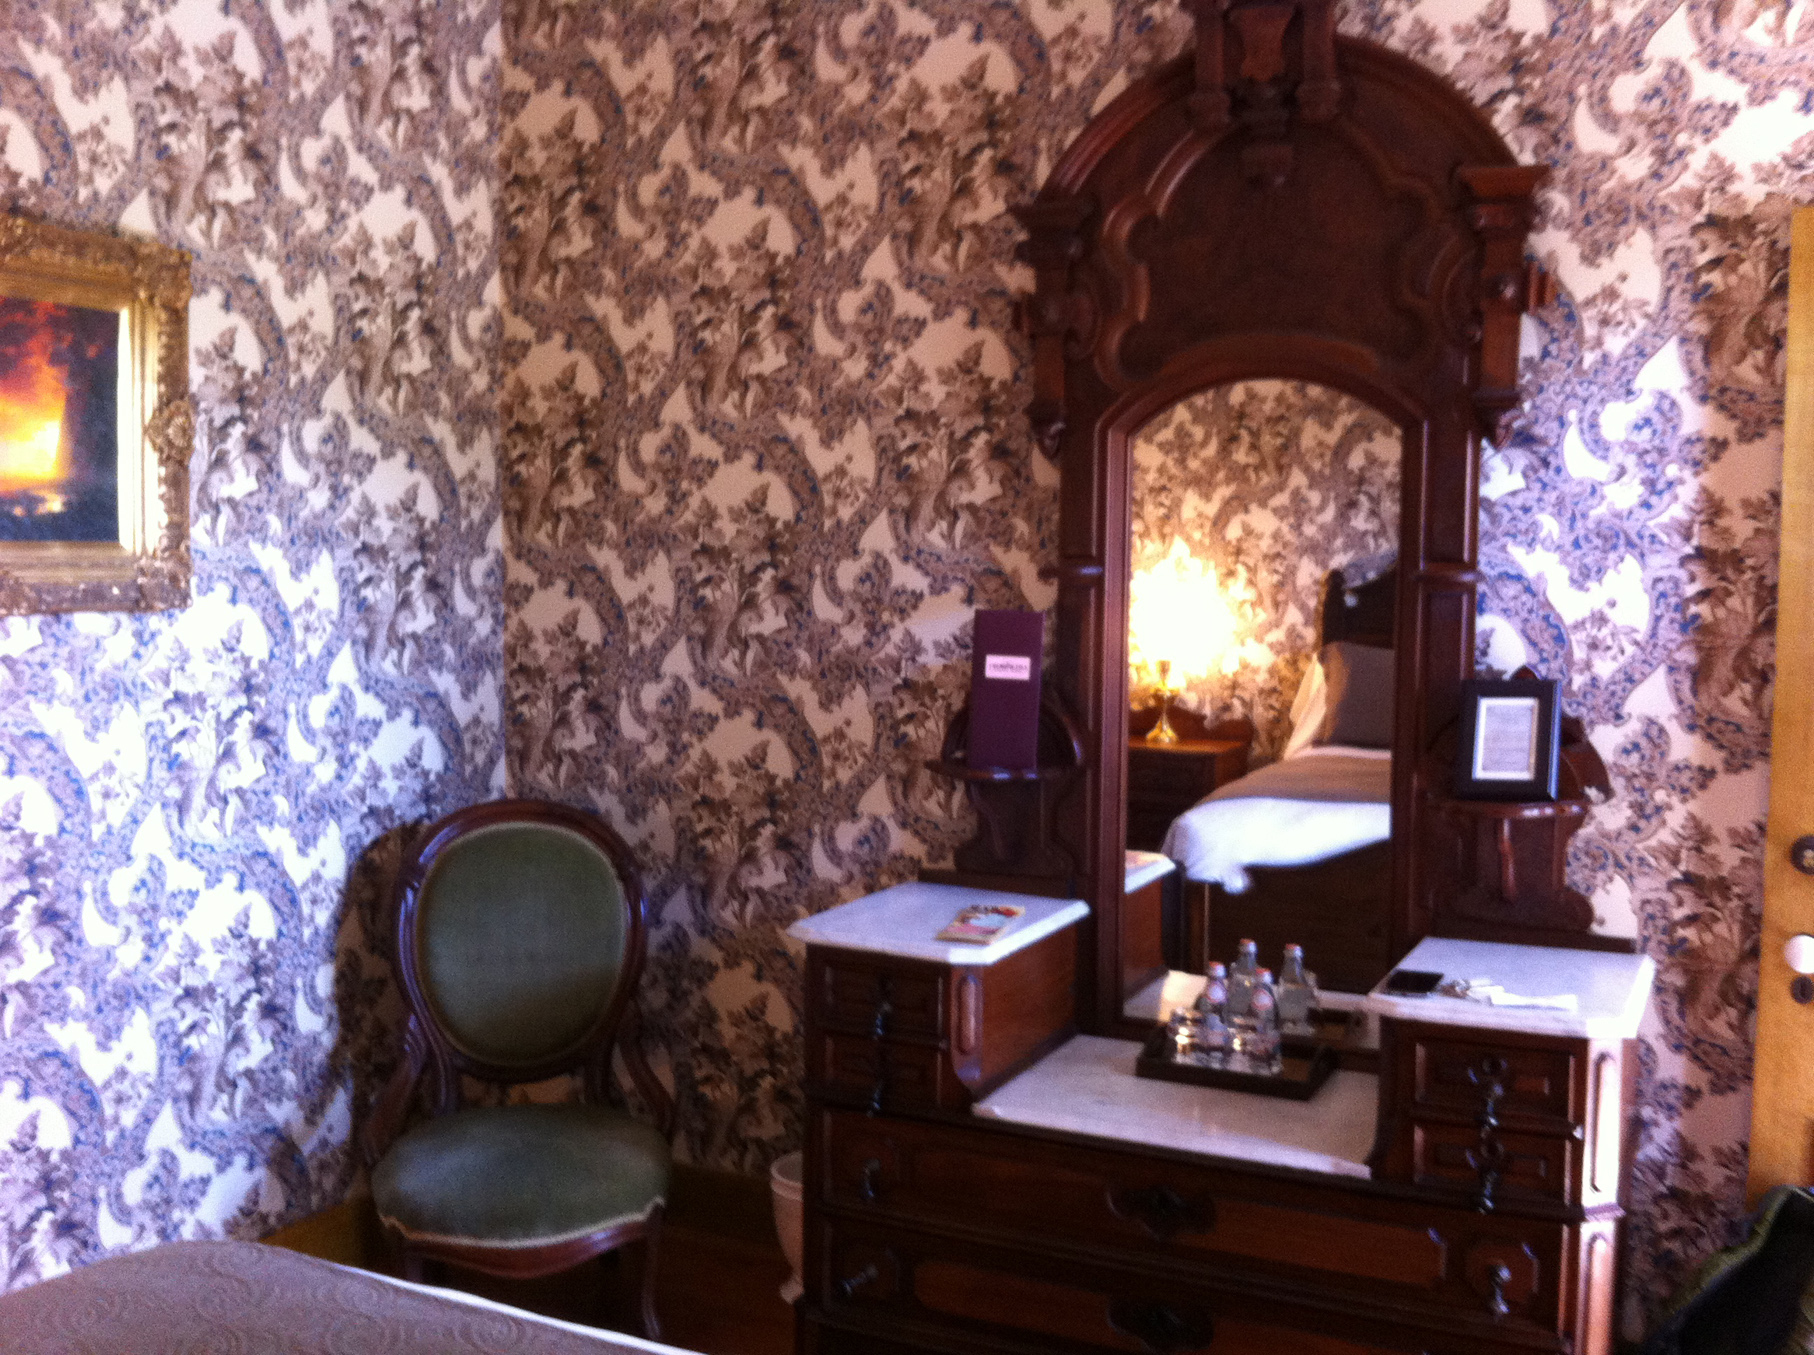 The Cosmopolitan Restaurant and Hotel, San Diego, Haunted, Hotel, San Diego, Old Town